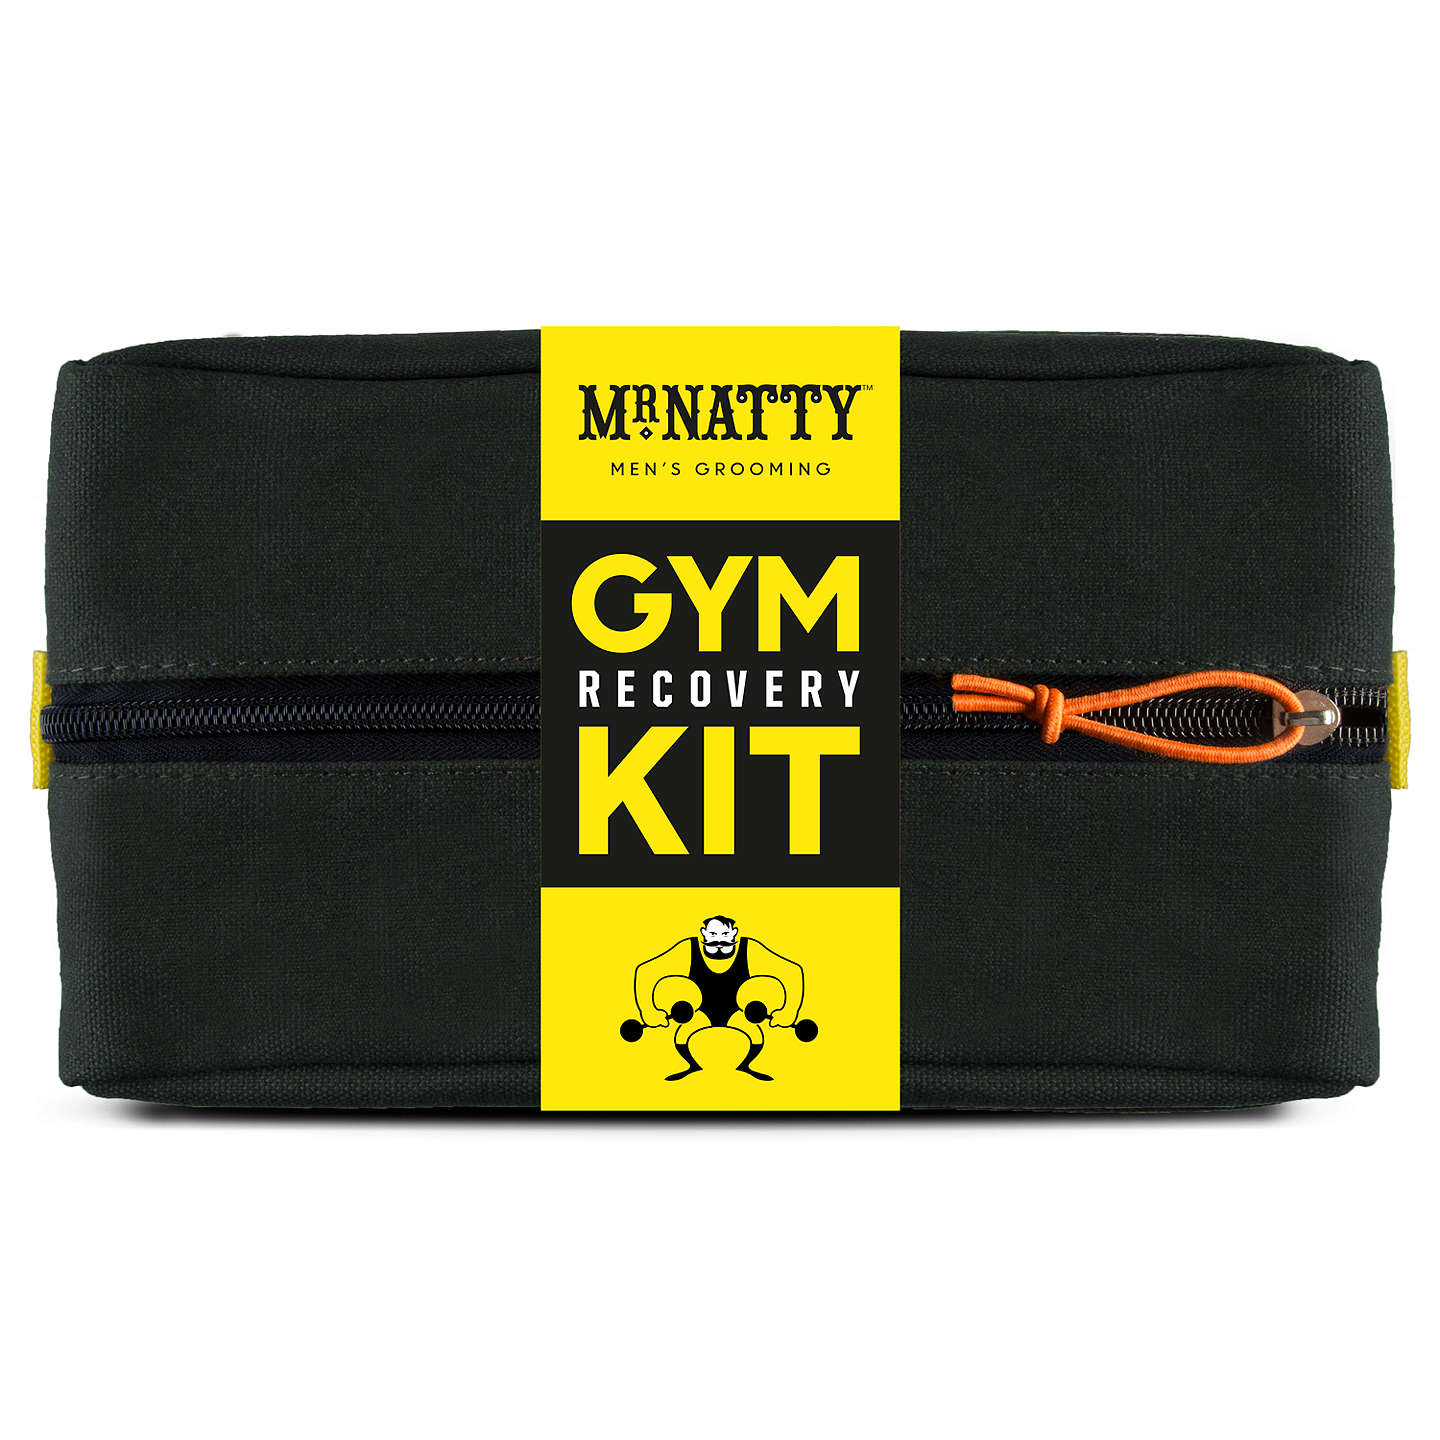 BuyMr Natty Gym Recovery Kit Online at johnlewis.com